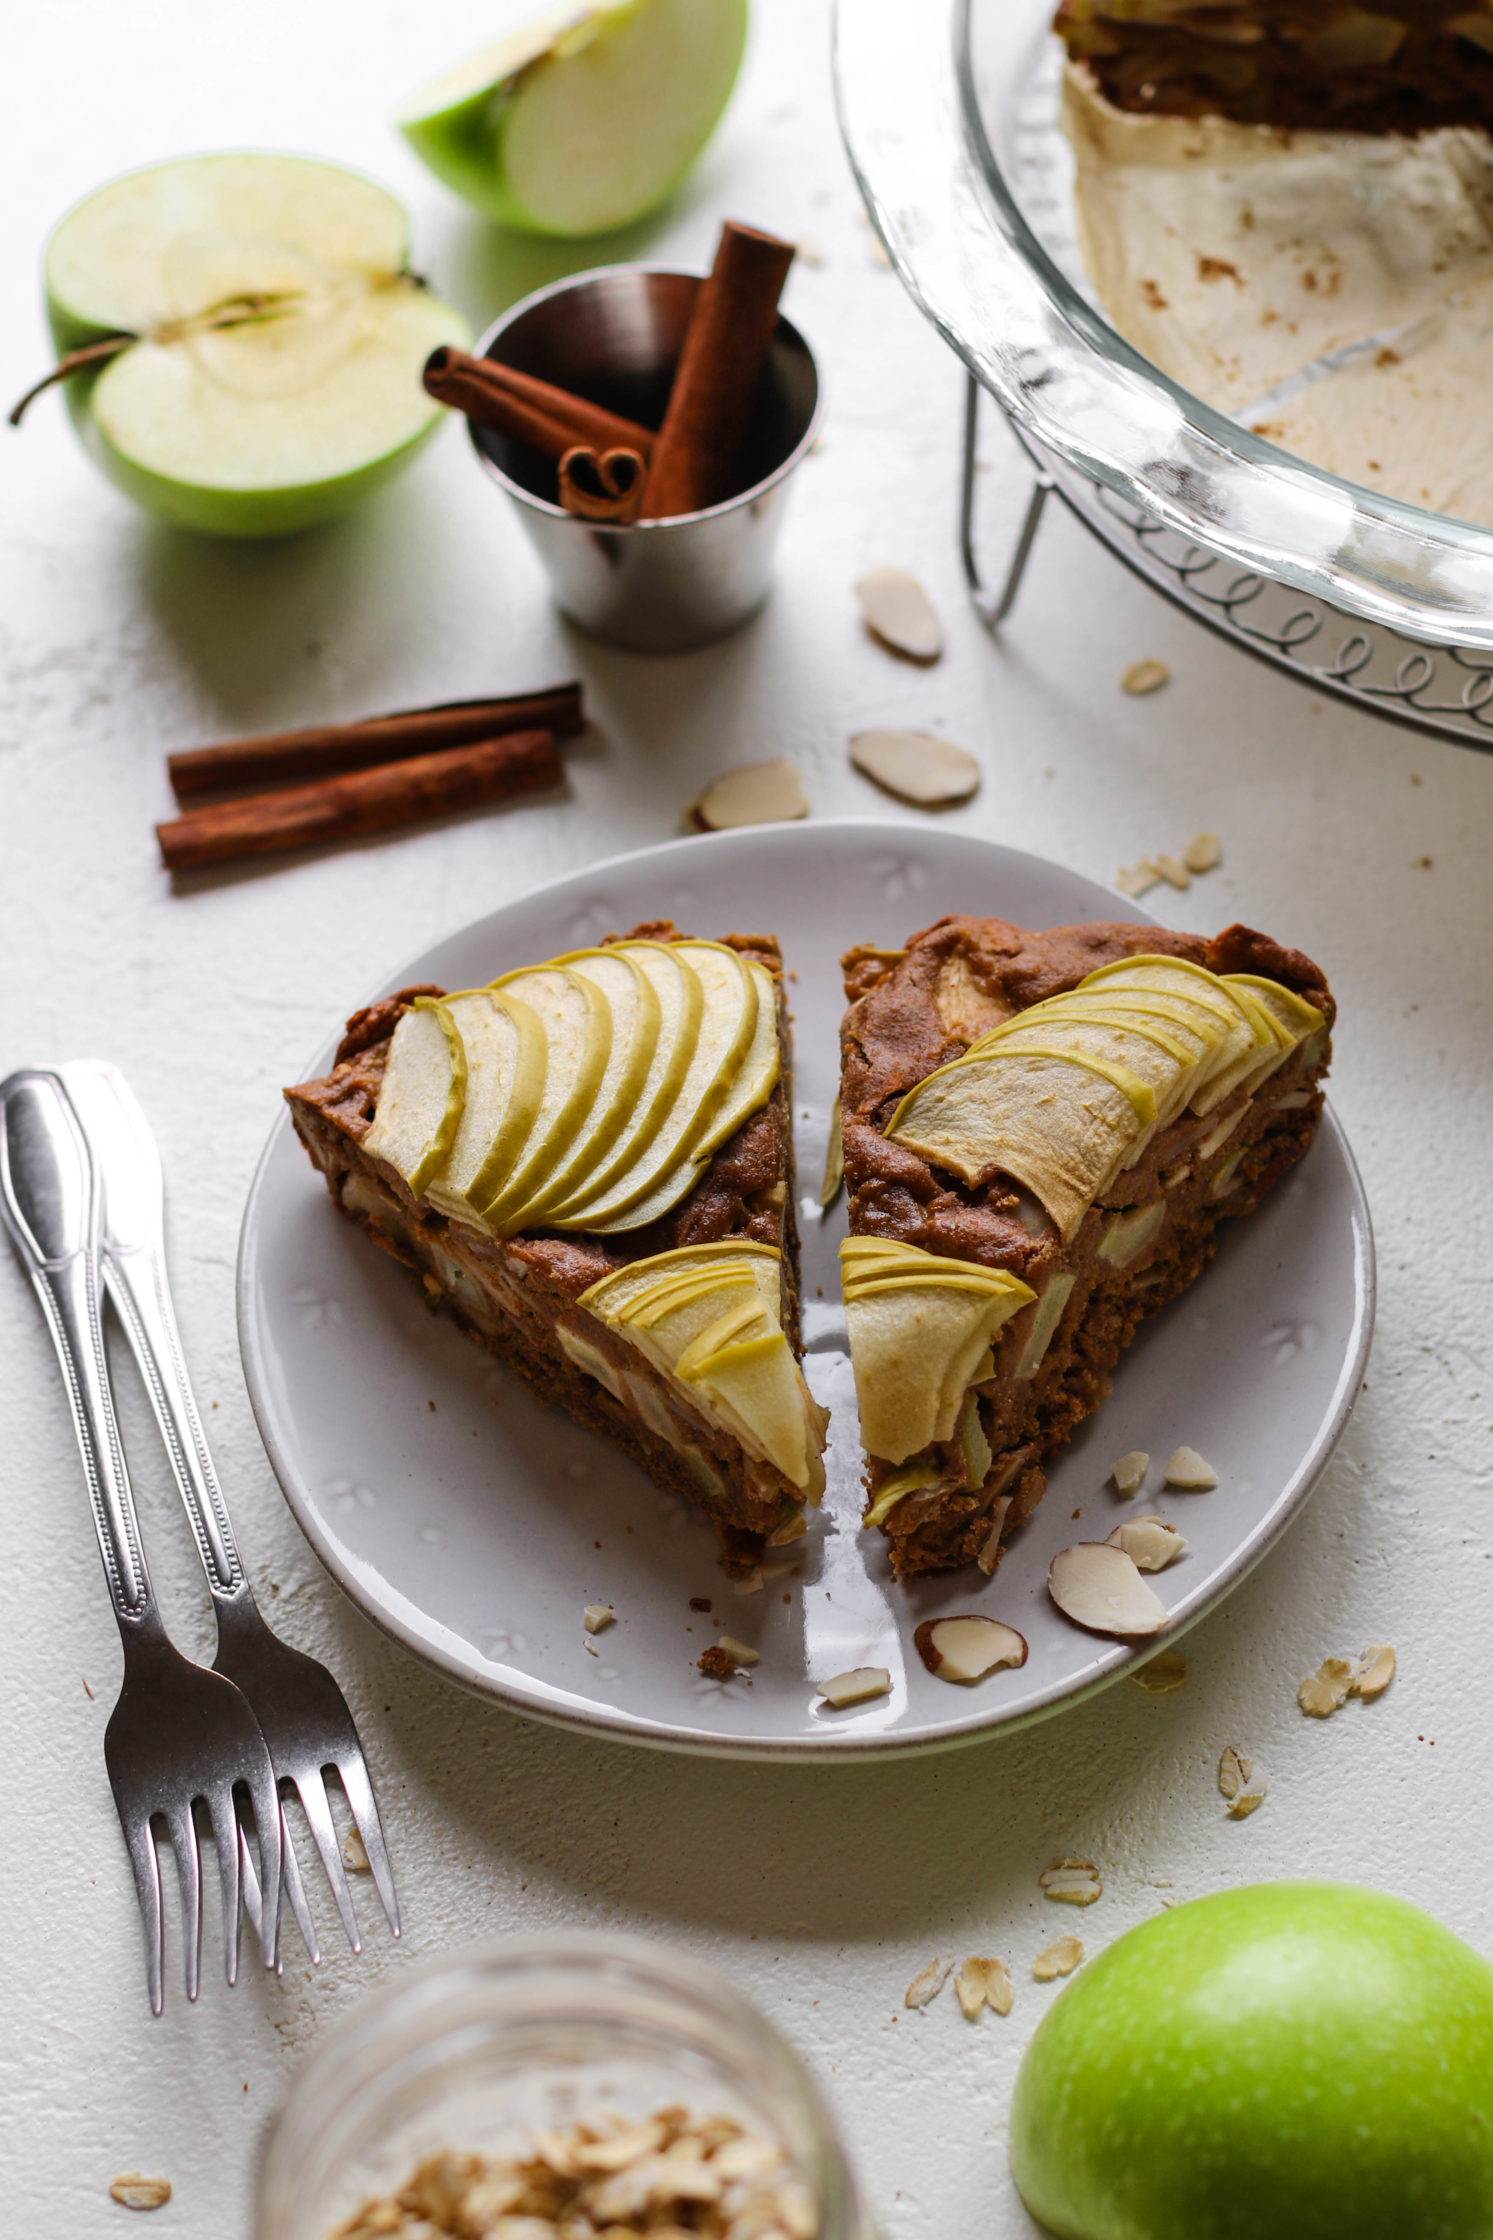 1-Bowl Apple Almond Oat Cake by Flora & Vino